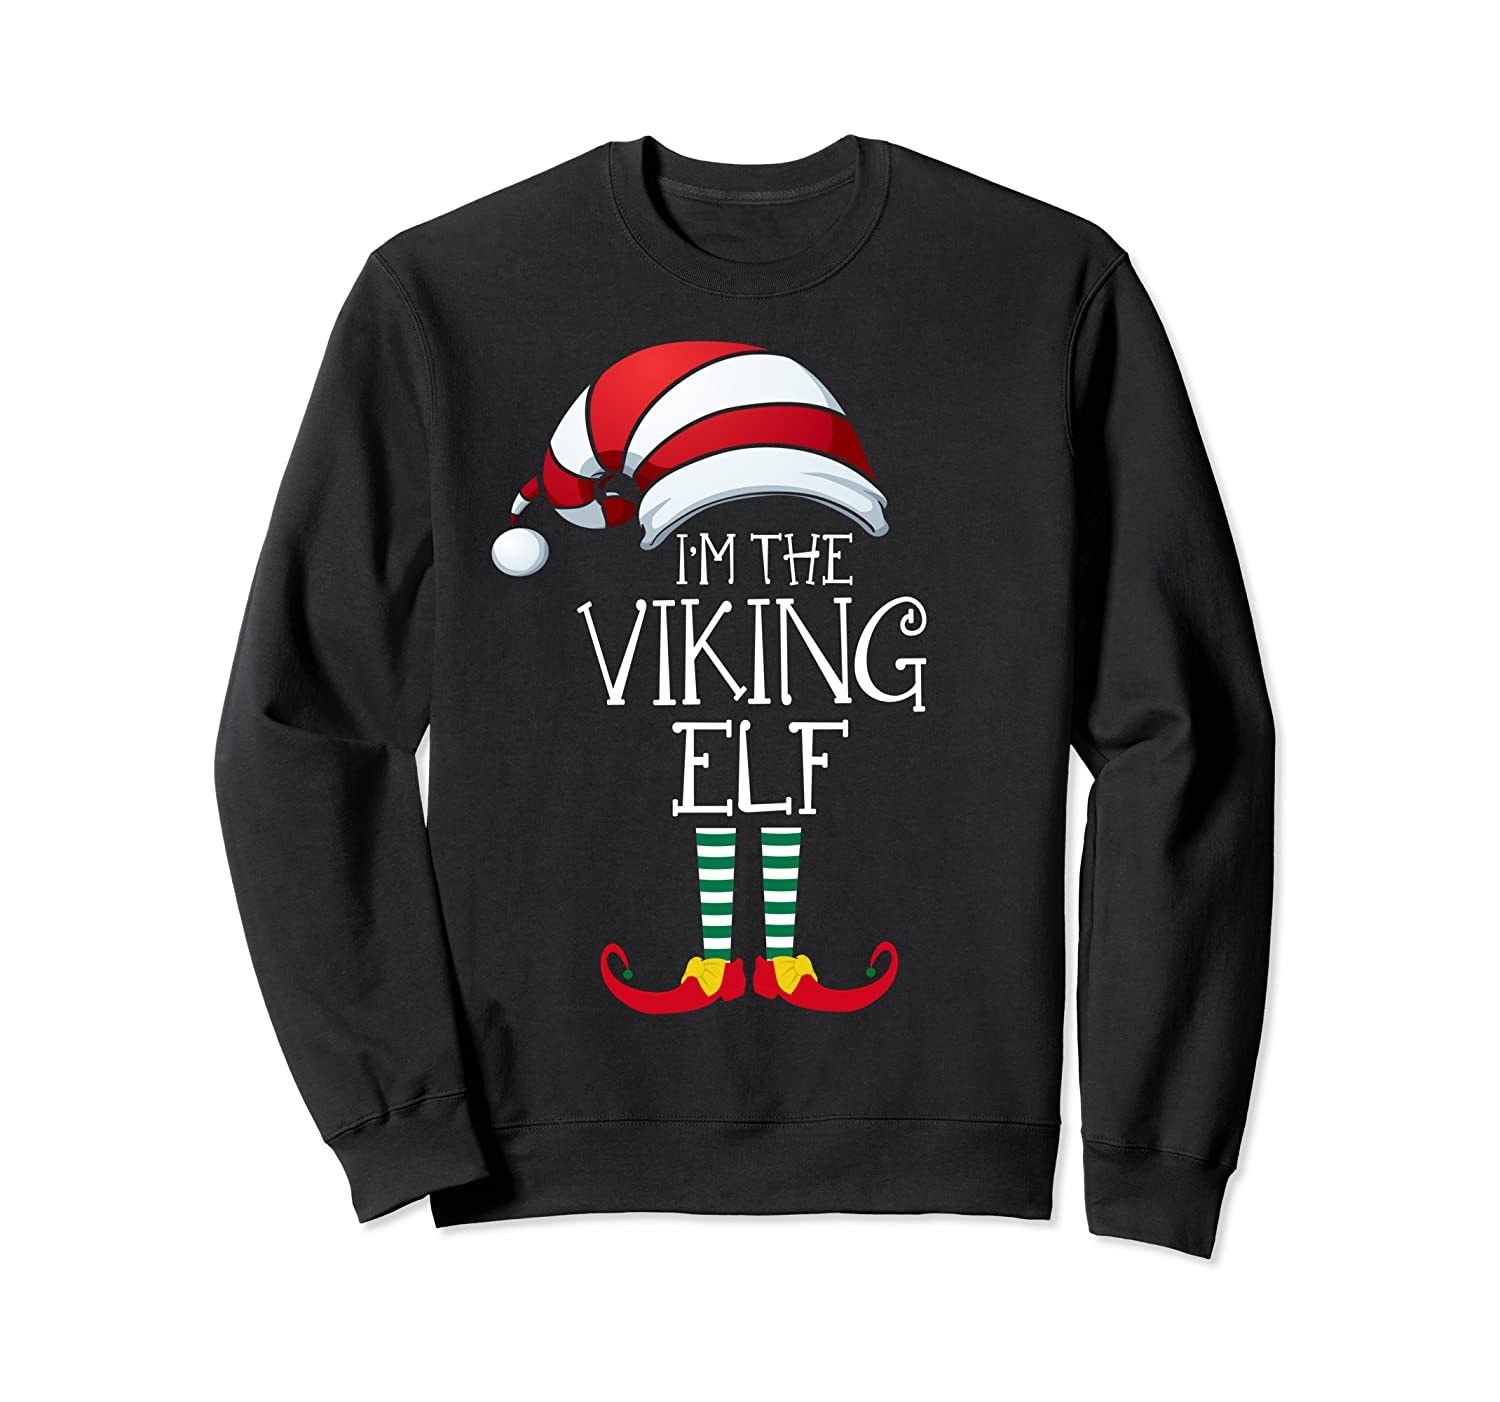 I'm The Viking Elf Family Matching Christmas Gift Group Sweatshirt-ANZ